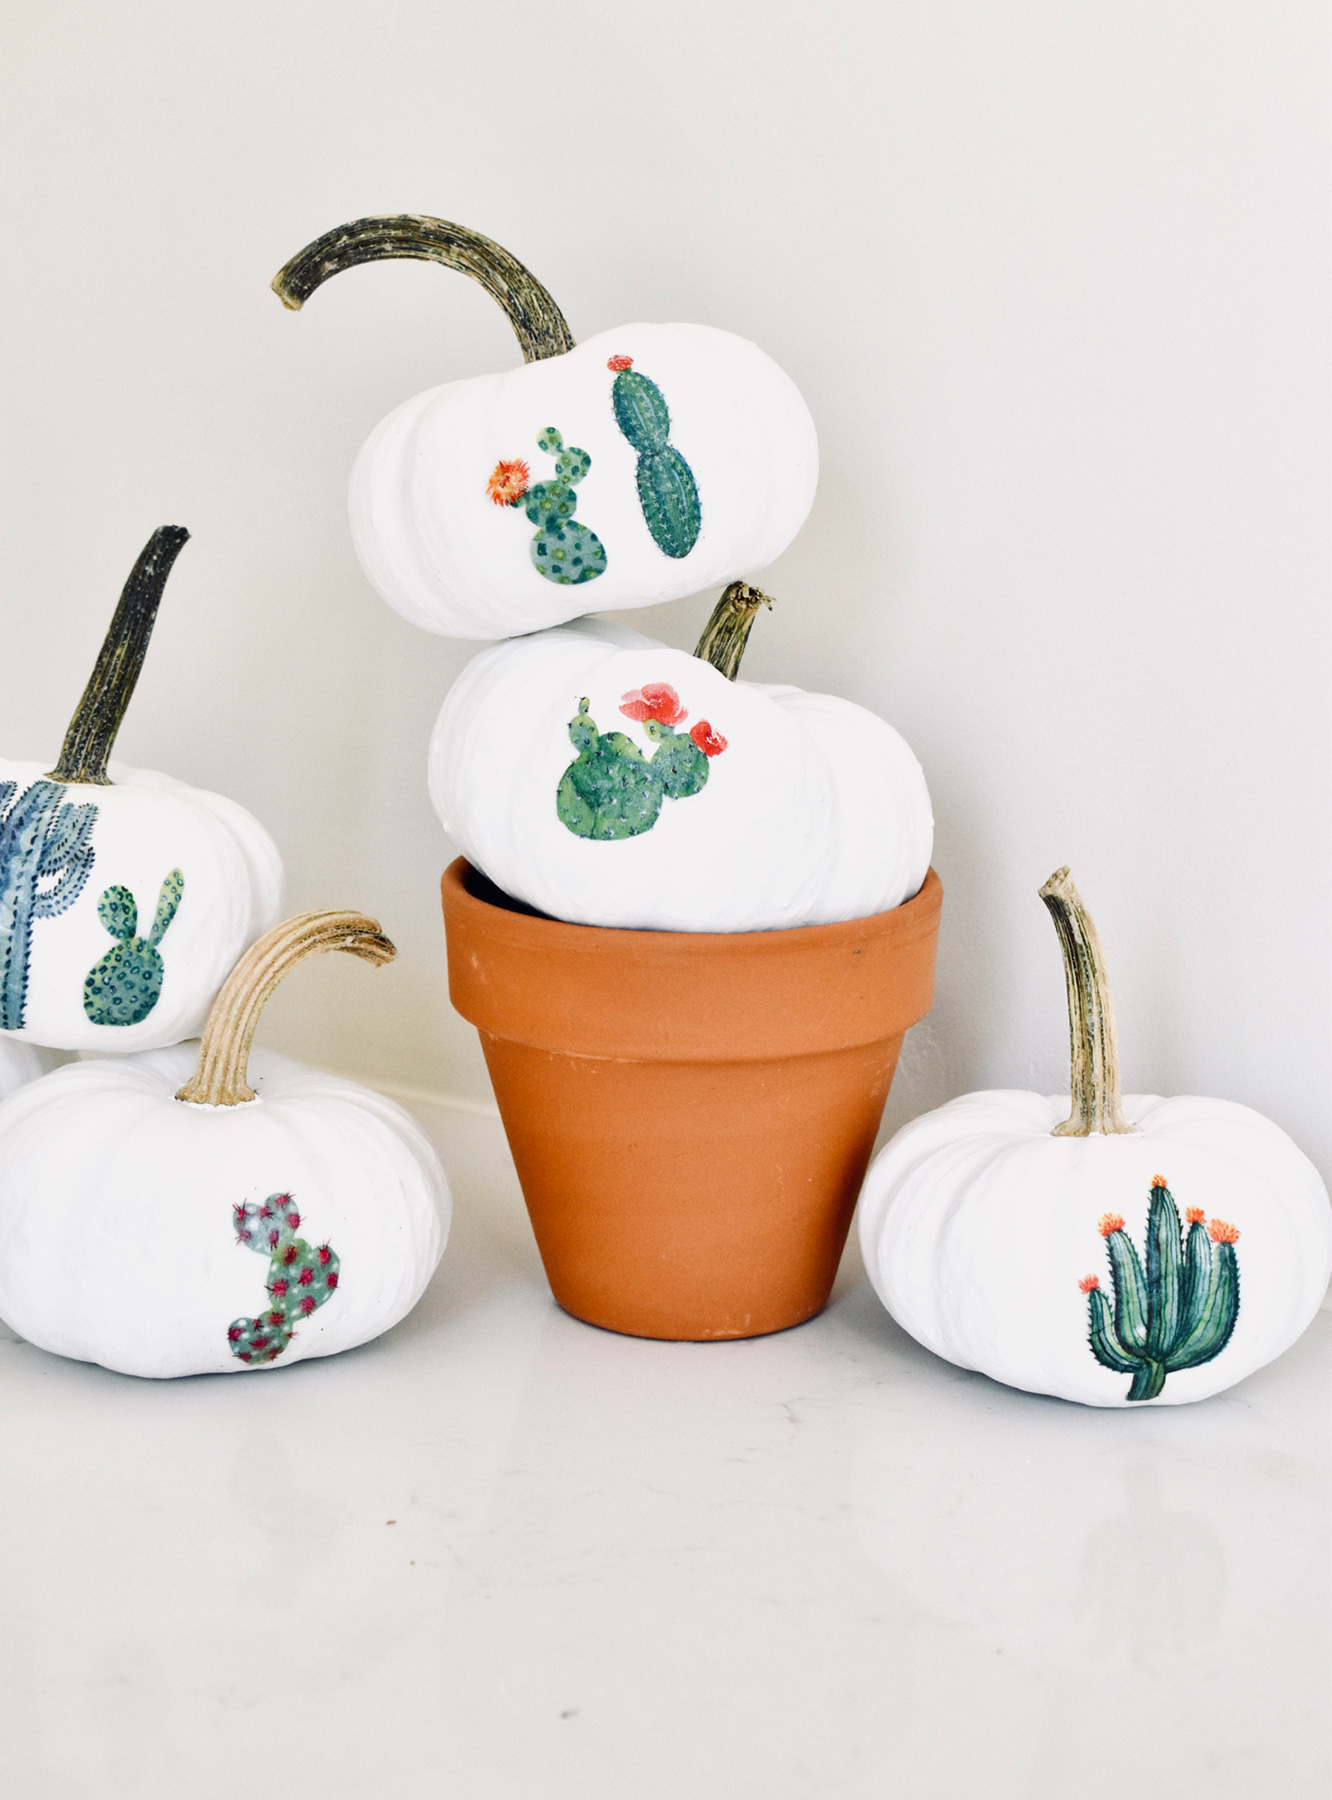 No carve pumpkin ideas - Mini Cactus Garden Pumpkins